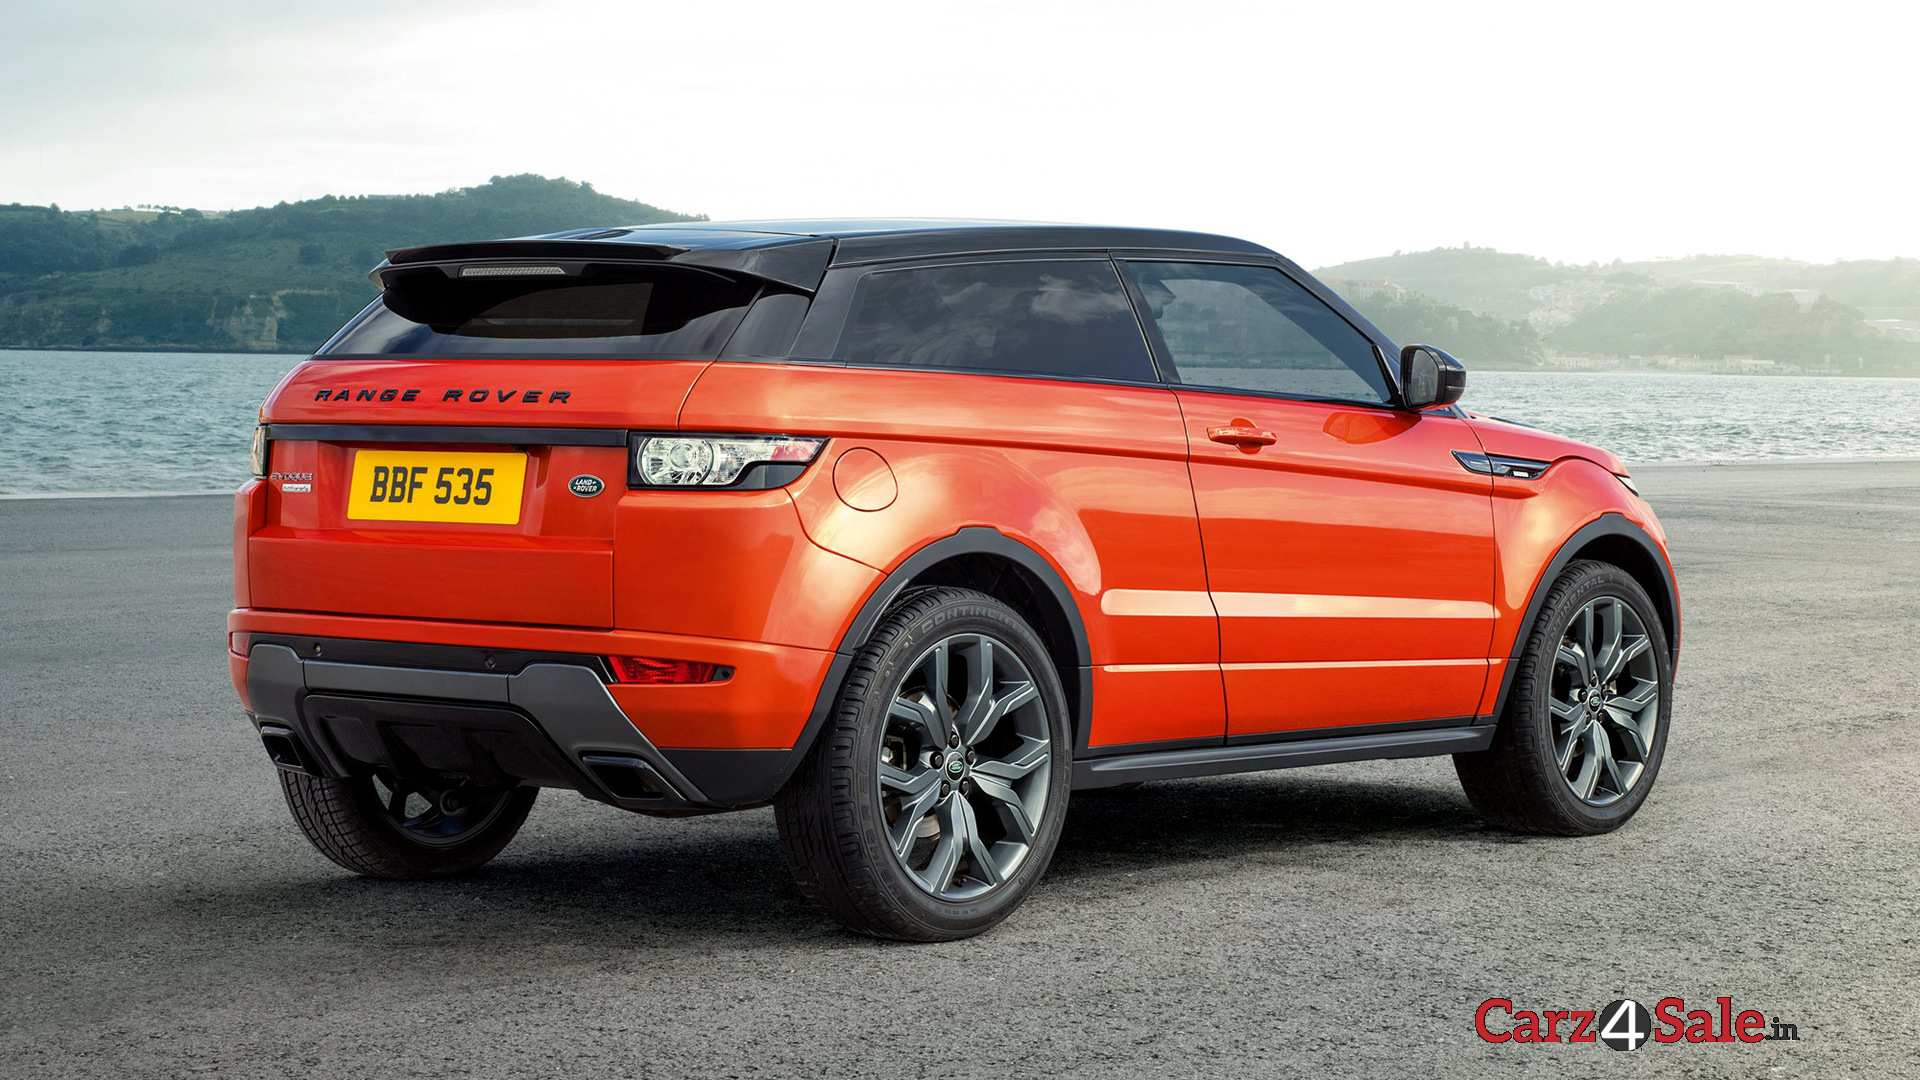 range rover evoque autobiography dynamic price in india. Black Bedroom Furniture Sets. Home Design Ideas